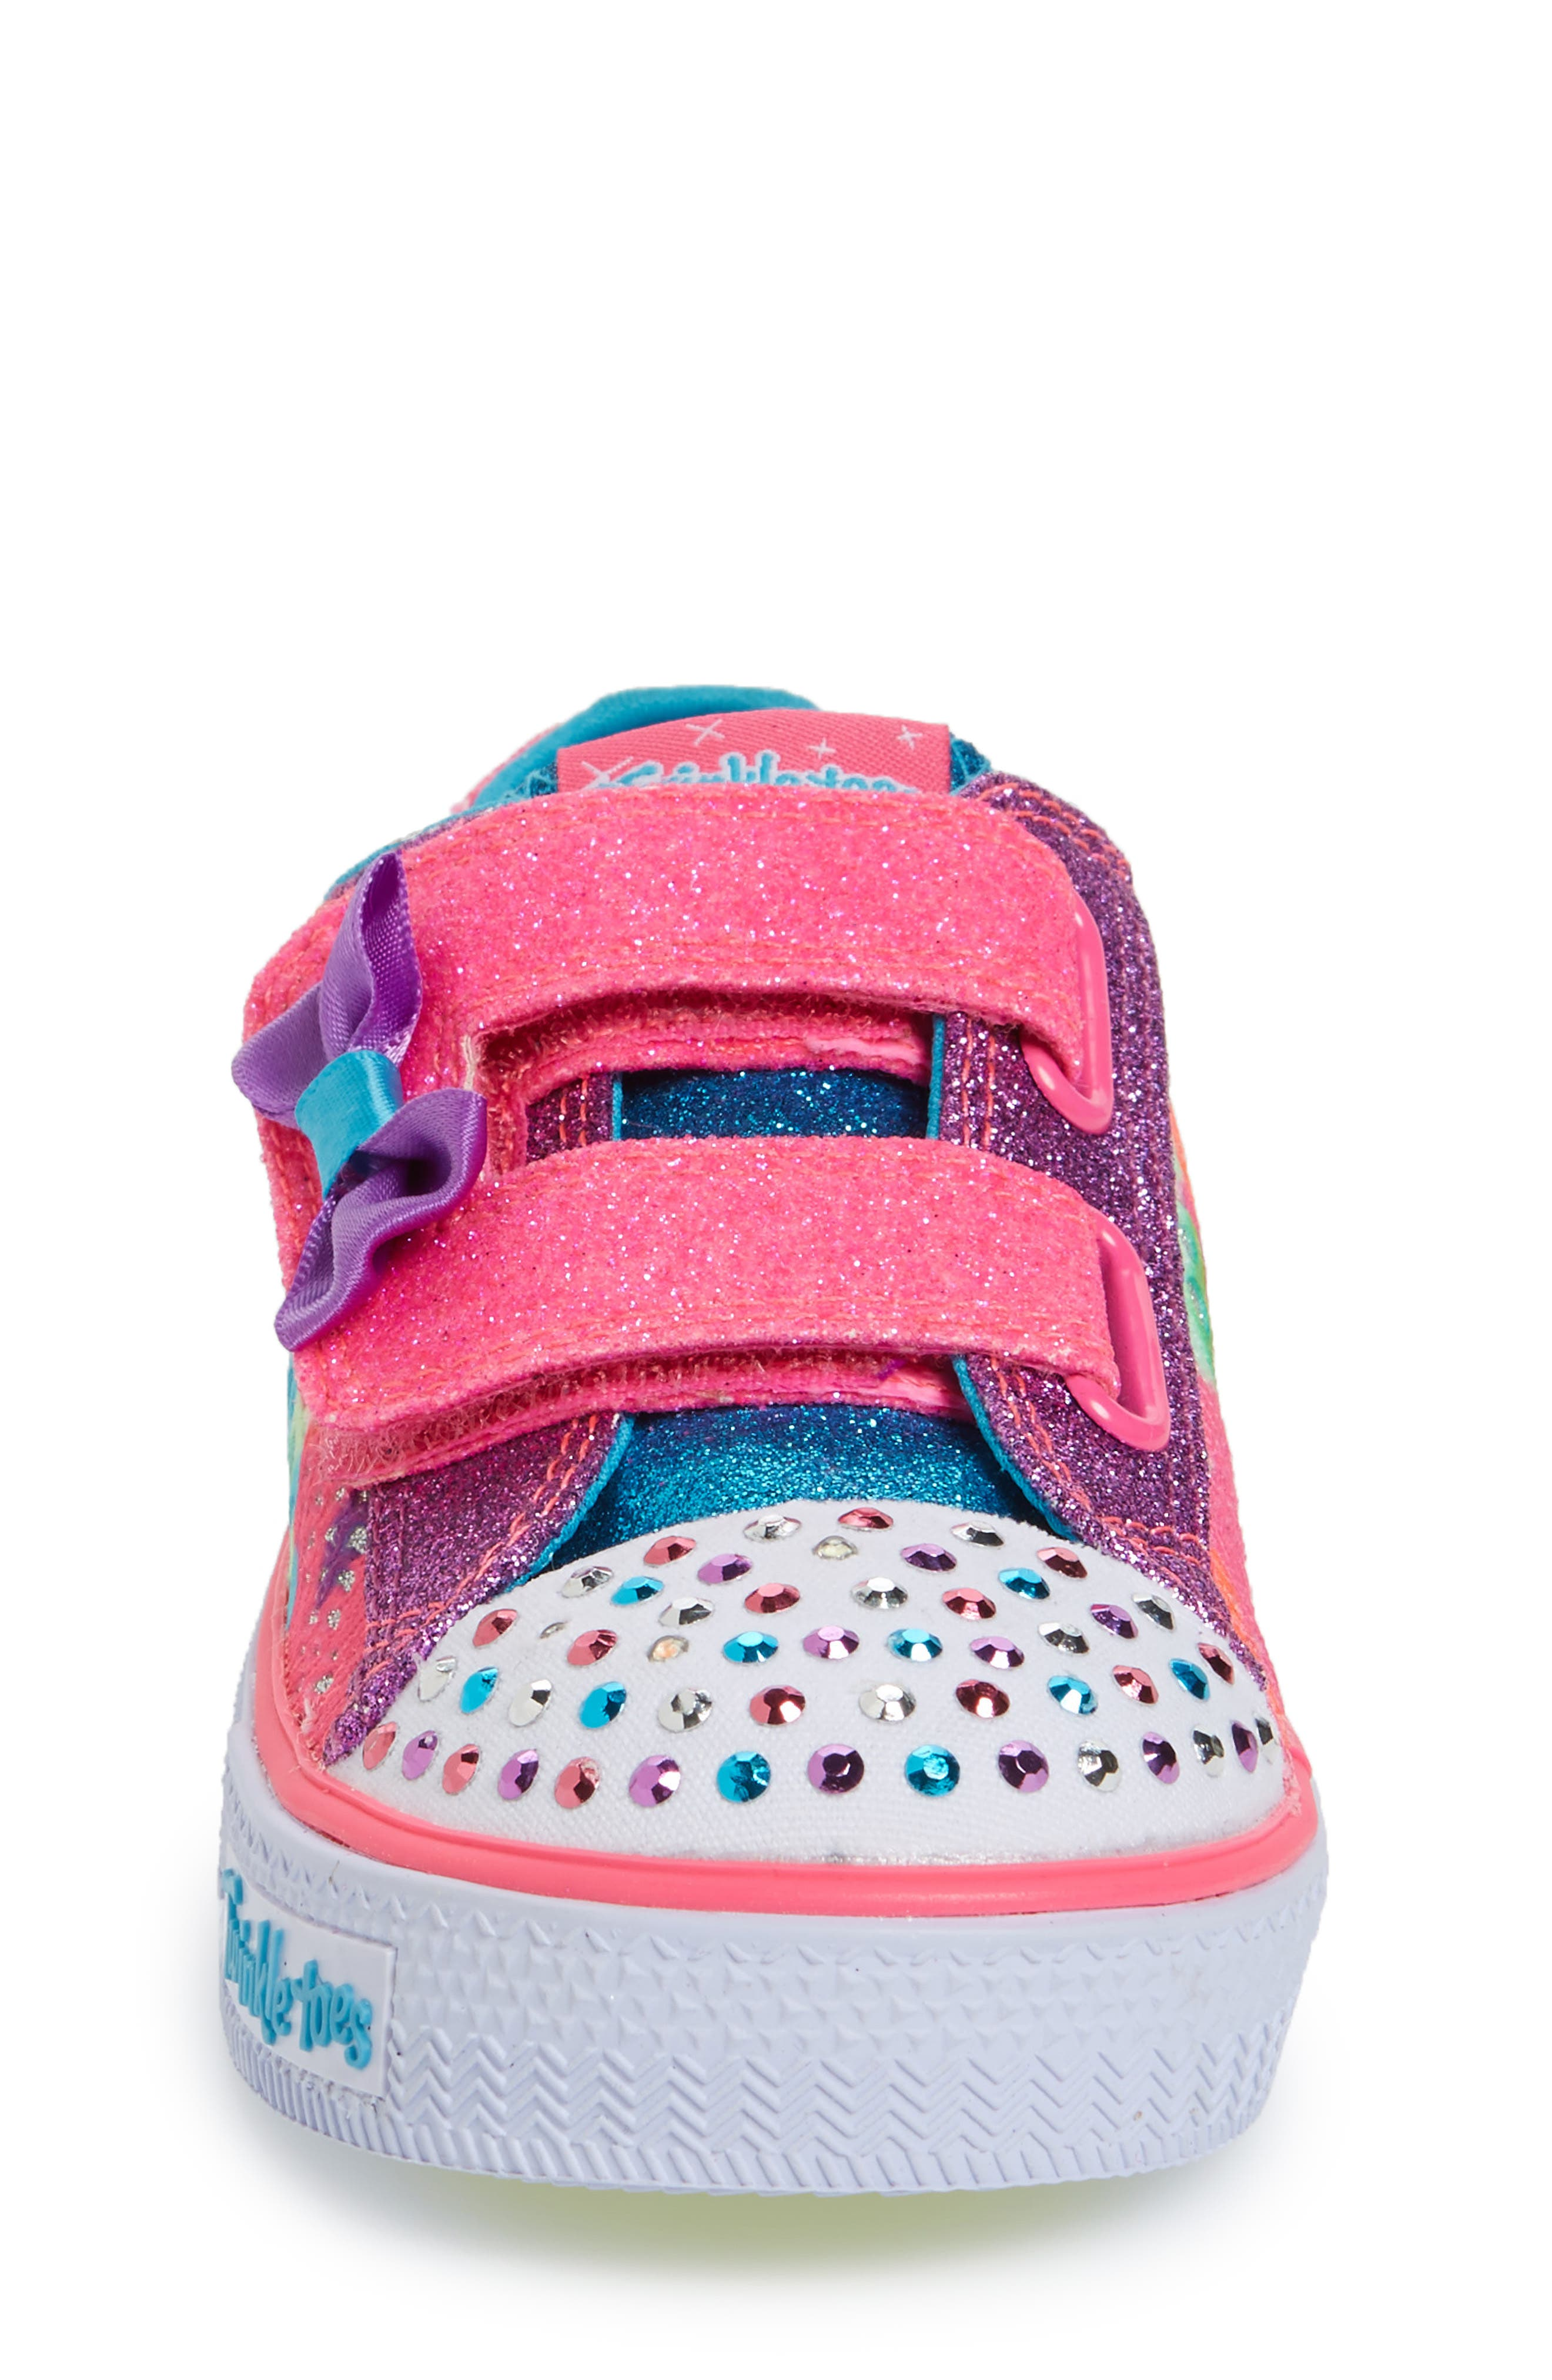 Twinkle Toes Shuffles Light-Up Sneaker,                             Alternate thumbnail 4, color,                             650